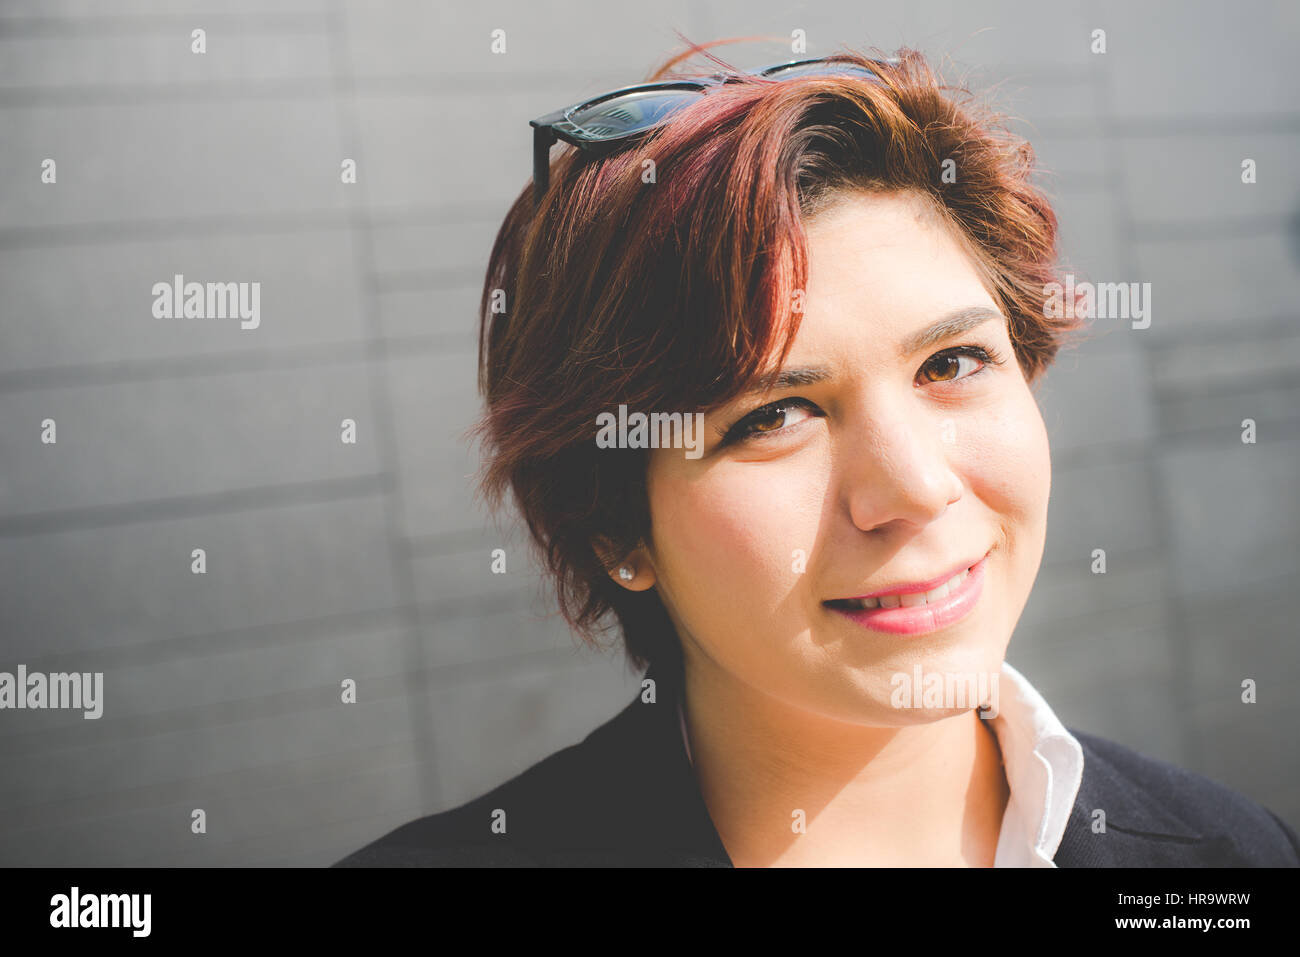 young authentic business woman smiling on modern wall background - Stock Image